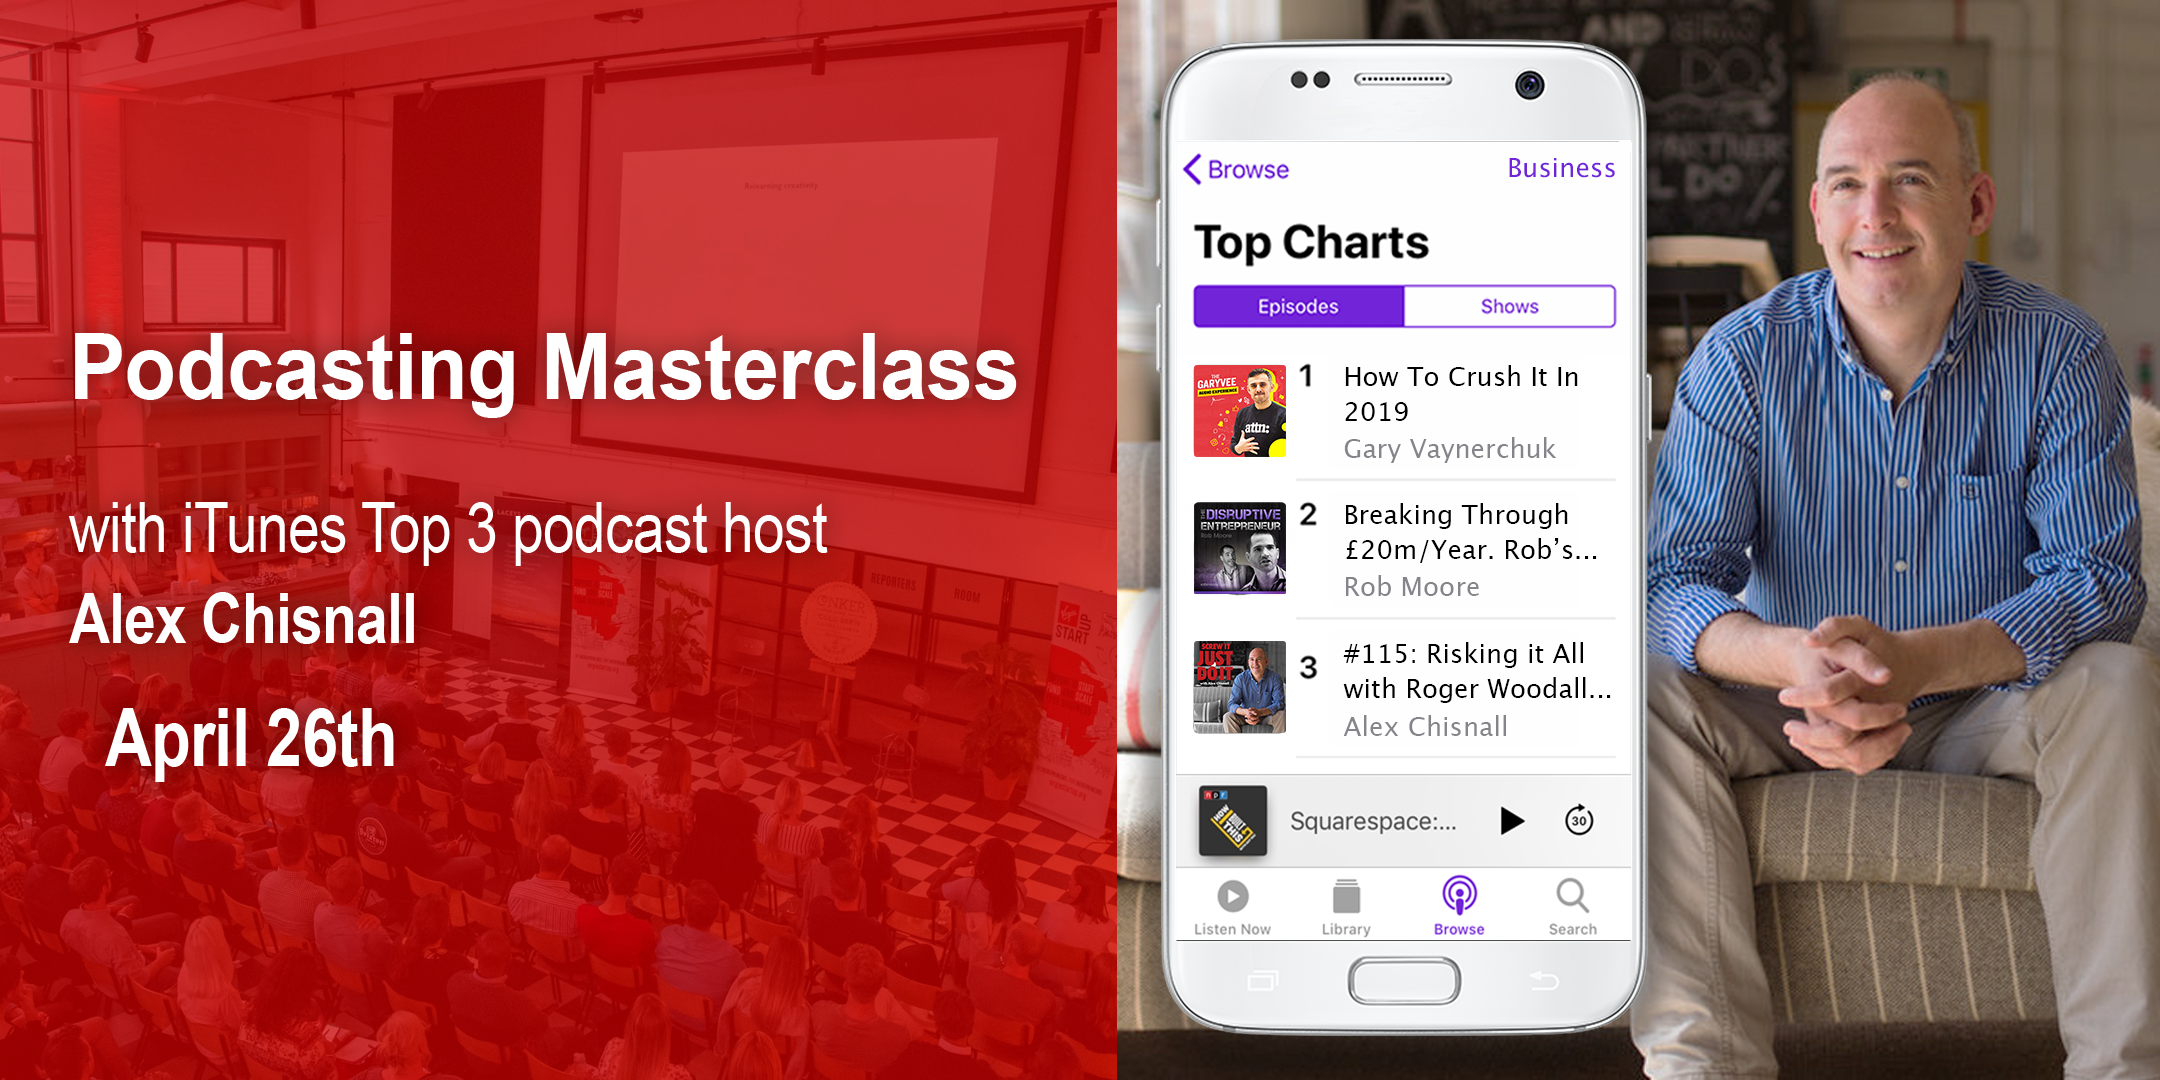 podcasting-masterclass-apr-2019.png